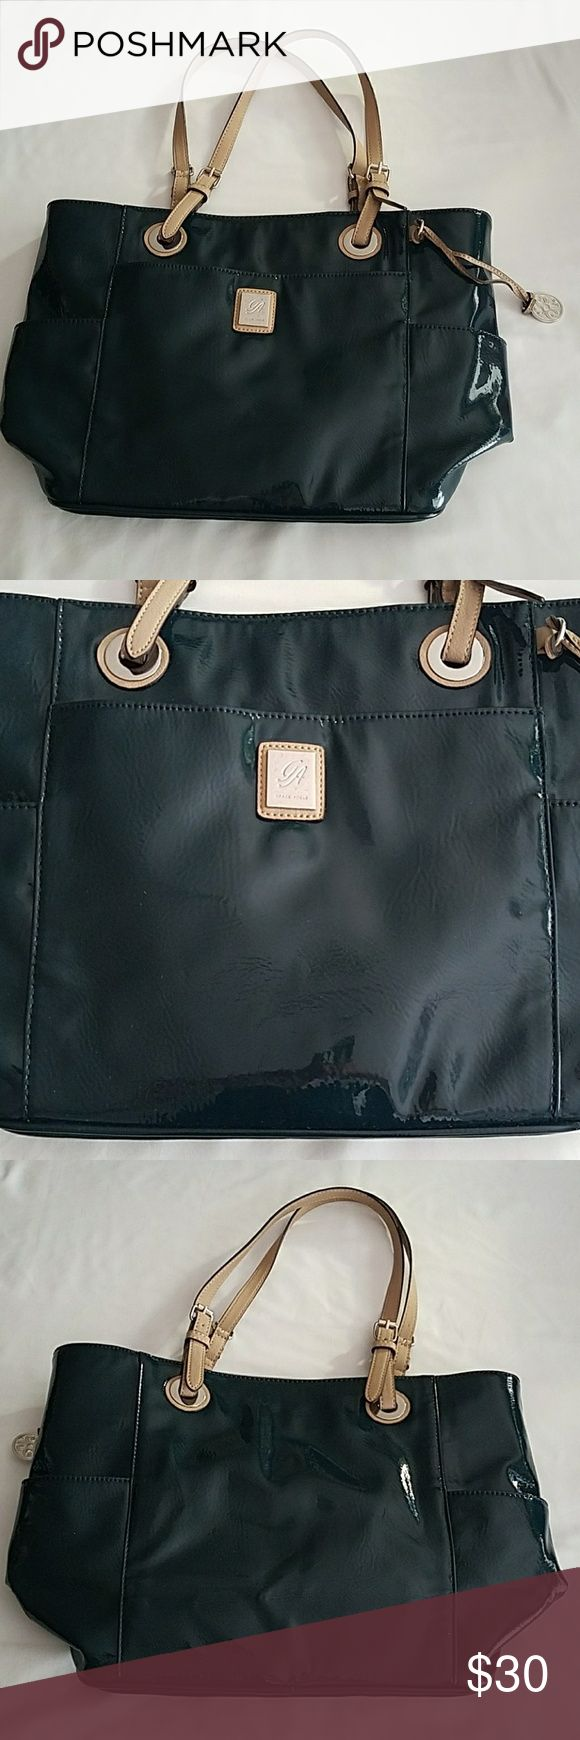 "Grace Adele purse Grace Adele purse. H 11"", L 16.5"", W 6"". In great condition. A very nice blue color . Has a front outside pocket, a pocket on each side of purse, and inside has 2 pockets with zipper, 2 pockets that close with a magnetic clip, a pen pocket and two more small pockets. Plus an extra clear plastic bag that you can use for your makeup. Very nice purse!!! Grace Adele Bags"